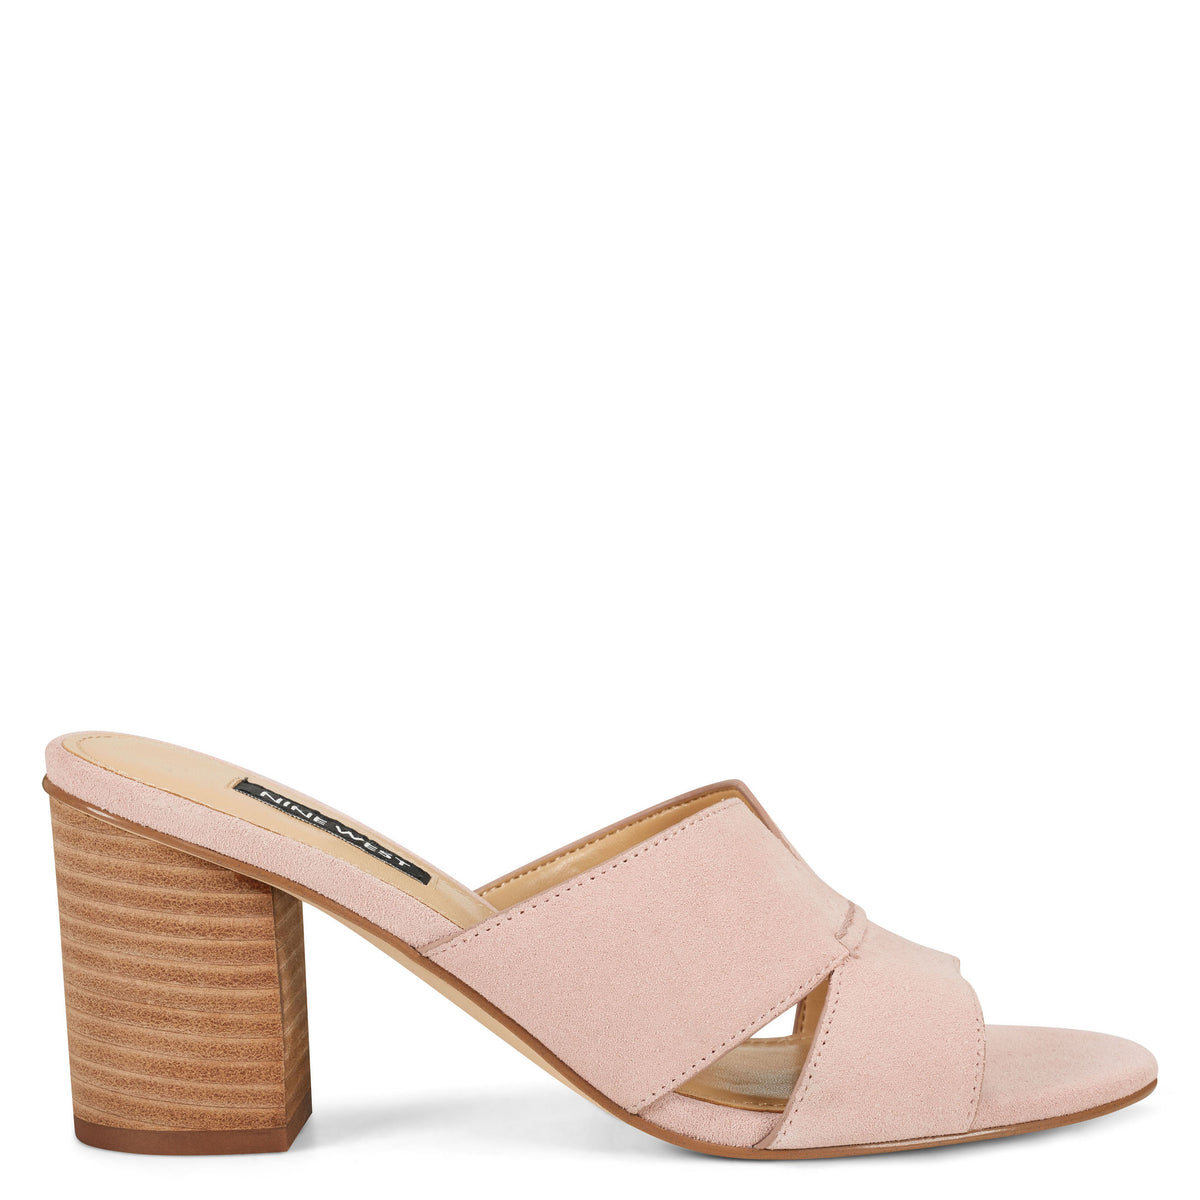 nicolet-slide-sandals-in-light-pink-suede